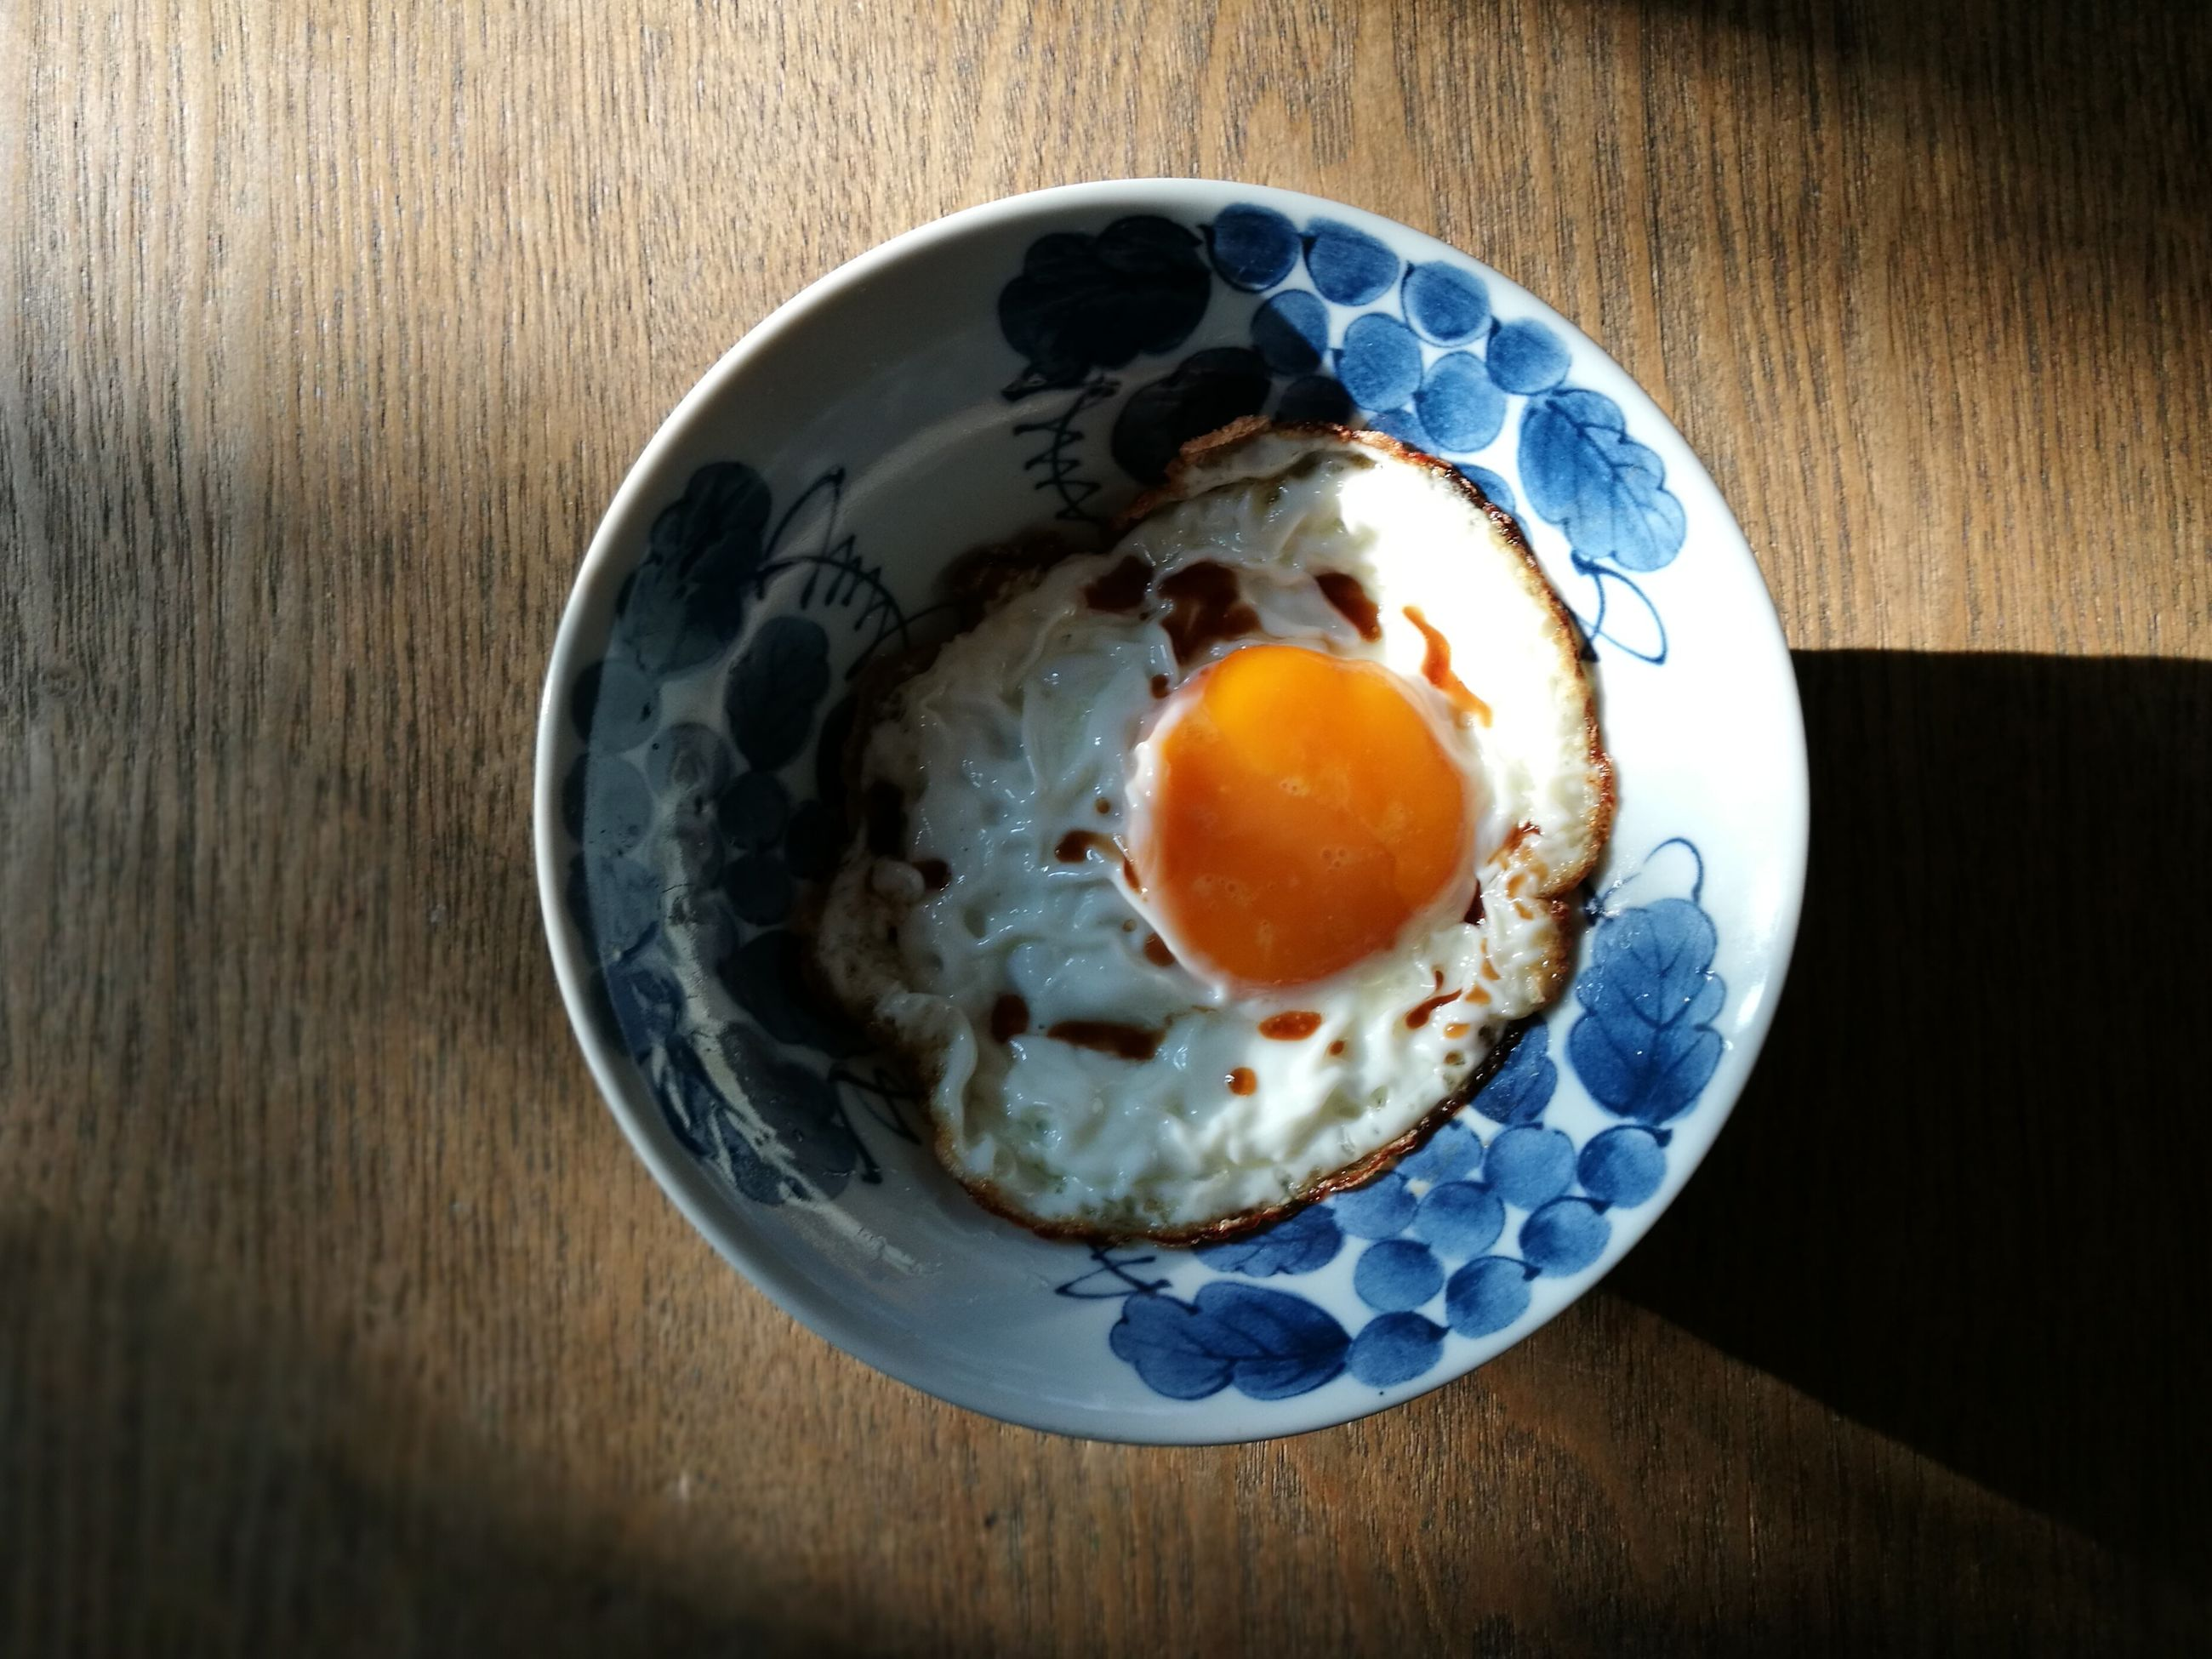 egg, food and drink, indoors, table, food, egg yolk, fried egg, breakfast, high angle view, no people, freshness, plate, directly above, ready-to-eat, healthy eating, close-up, sunny side up, day